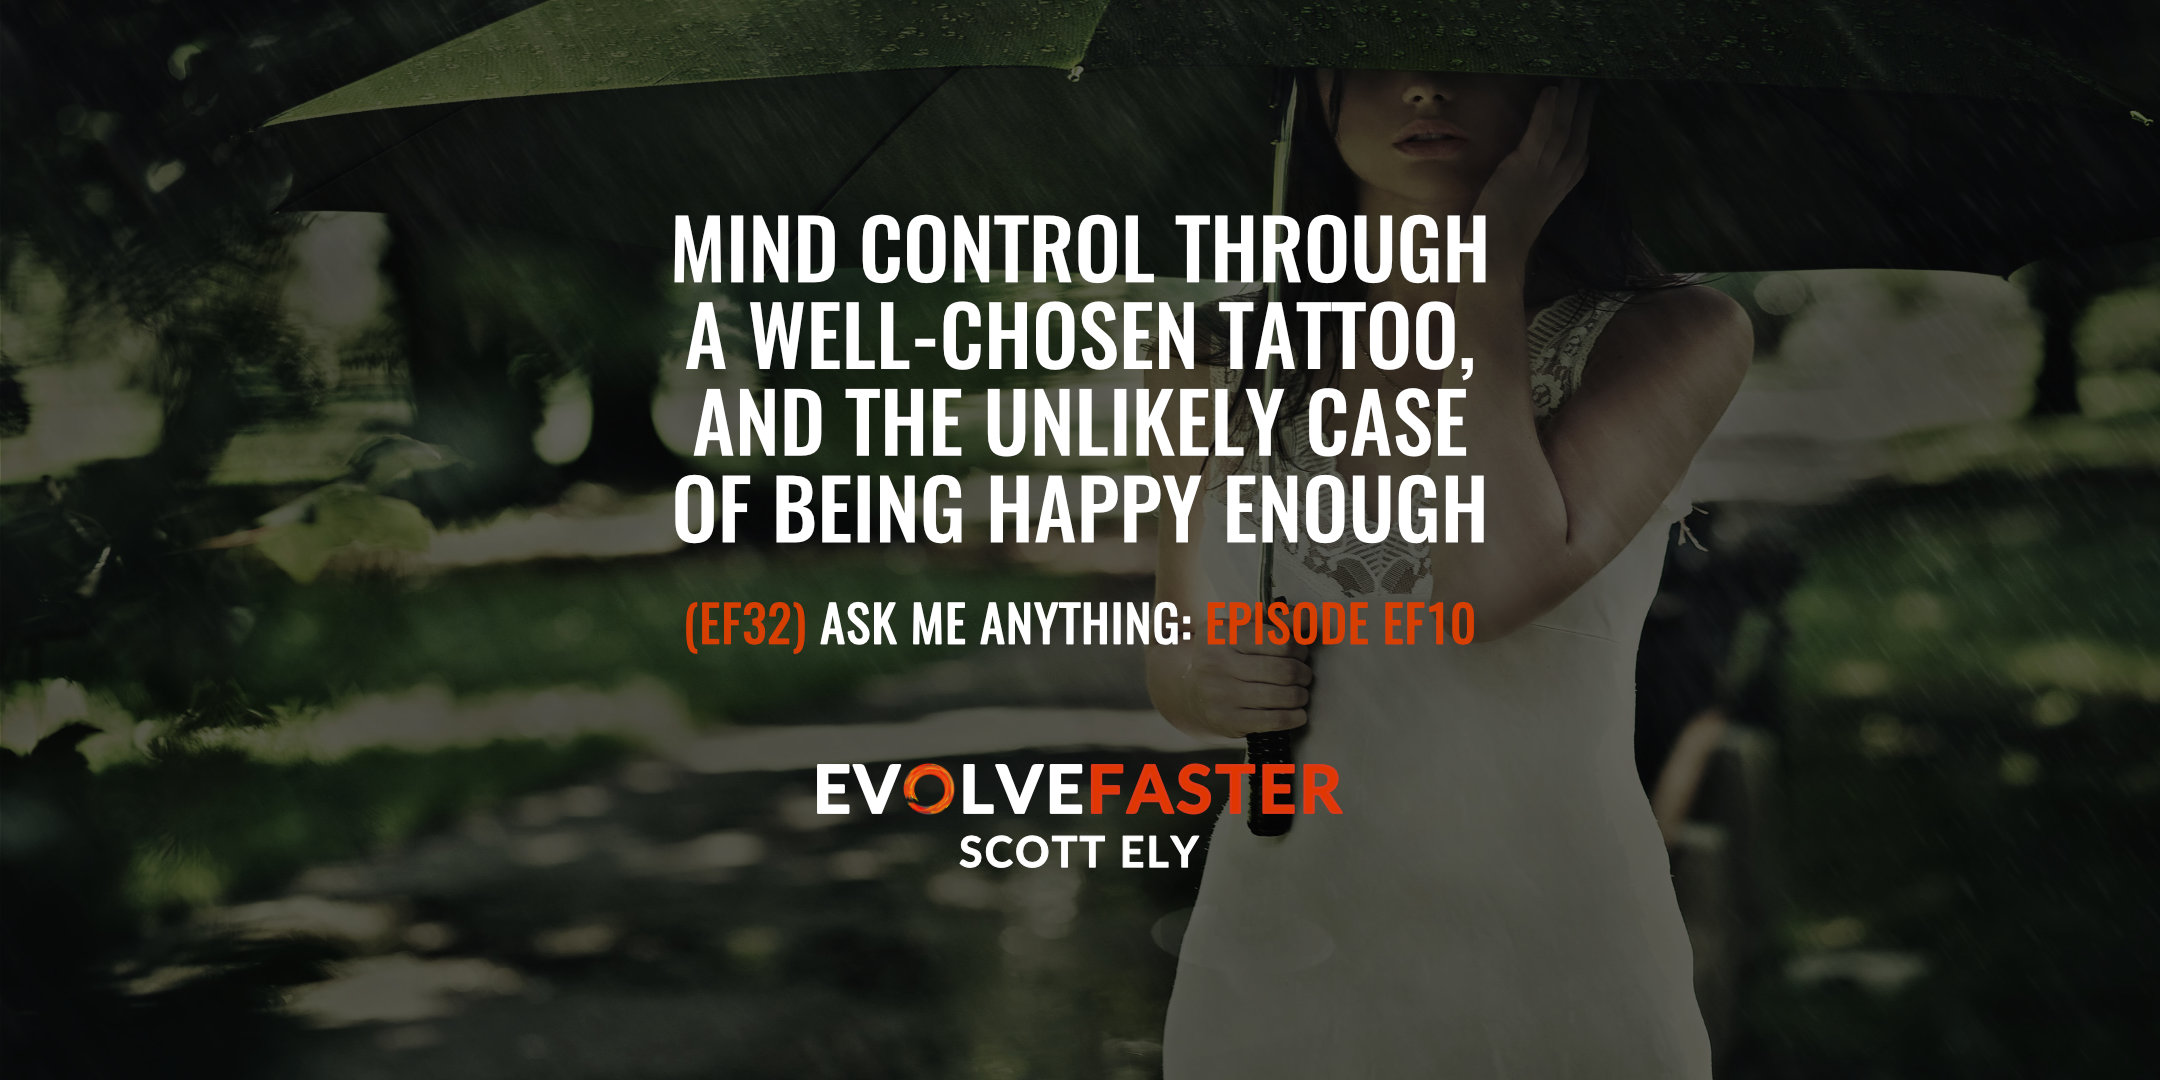 (EF32) AMA-EF10: Mind Control Through a Well Chosen Tattoo and the Unlikely Case of Being Happy Enough Ask Me Anything for Episode EF3